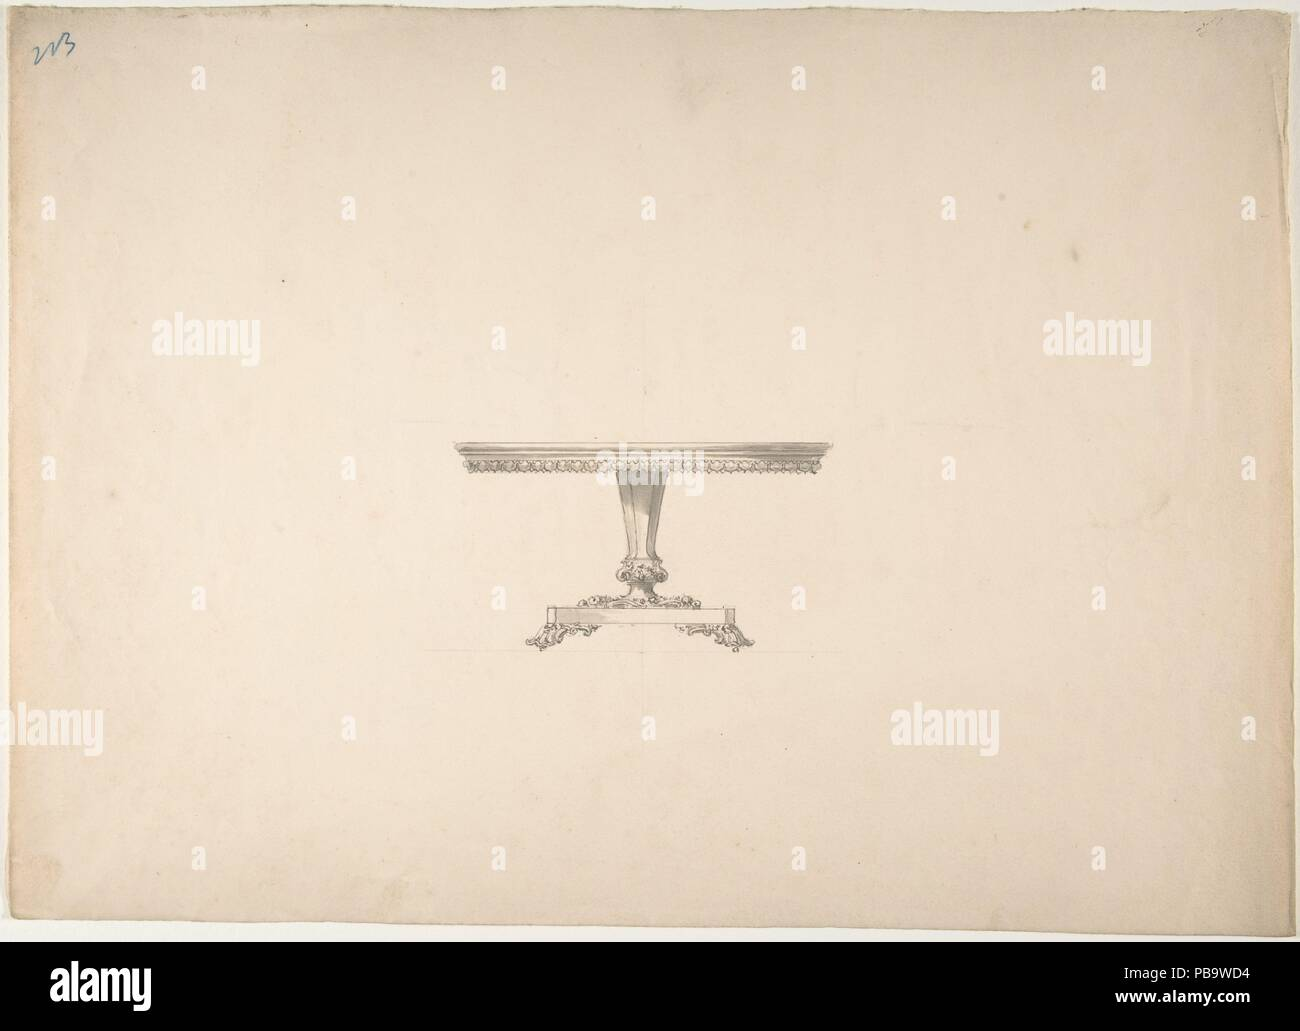 Design for a Round Pedestal Table. Artist: Anonymous, British, 19th century. Dimensions: sheet: 10 13/16 x 15 1/16 in. (27.4 x 38.2 cm). Date: early 19th century. Museum: Metropolitan Museum of Art, New York, USA. - Stock Image